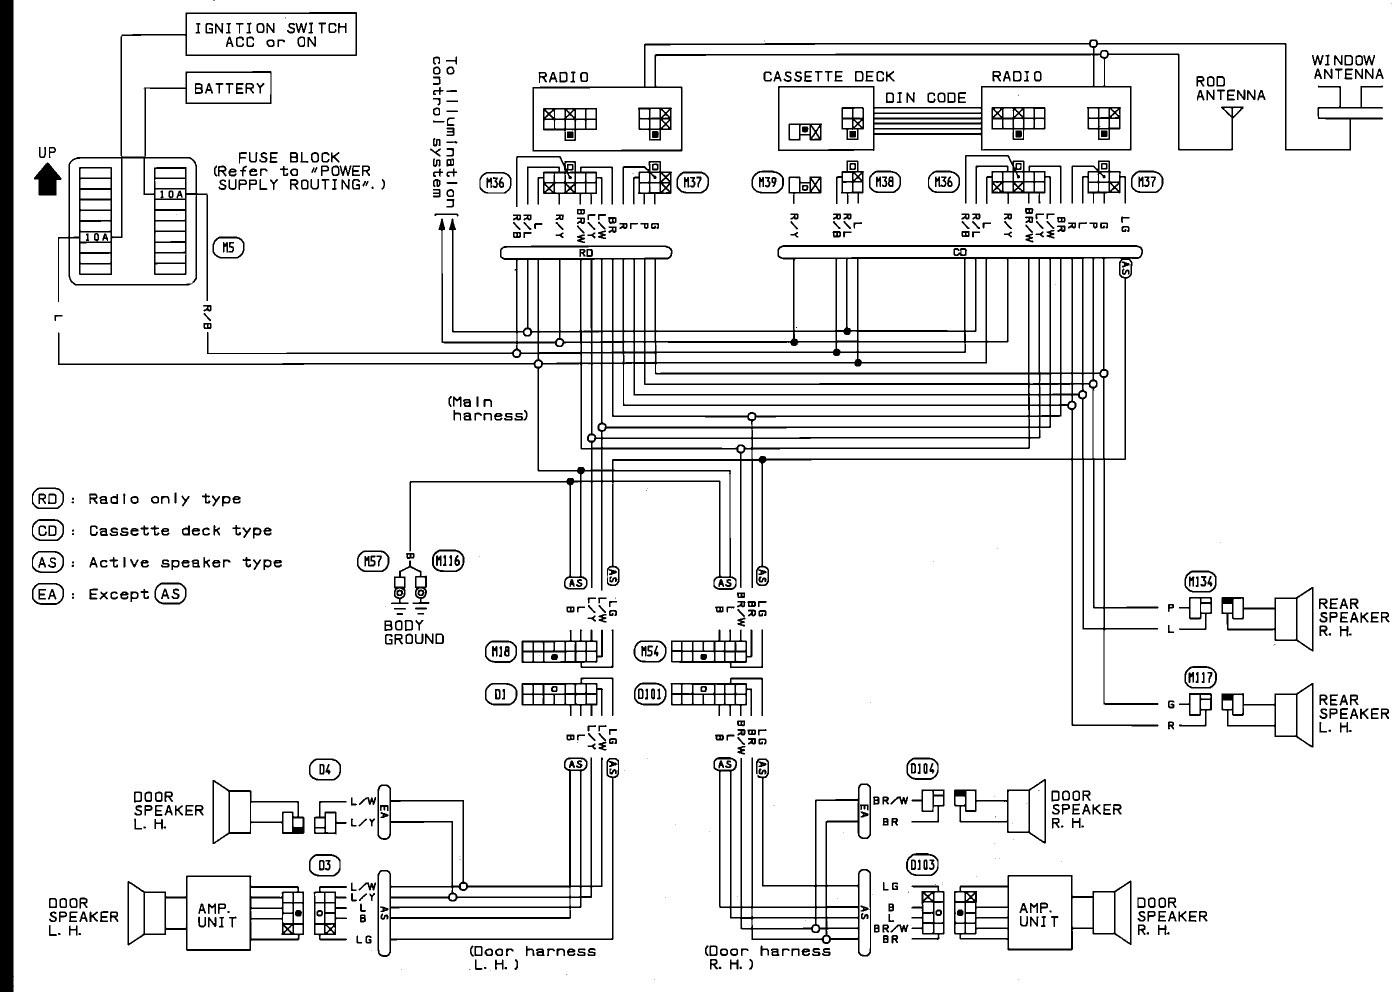 Diagram 2005 Nissan Radio Wiring Diagram Full Version Hd Quality Wiring Diagram Diagramwardp Gisbertovalori It